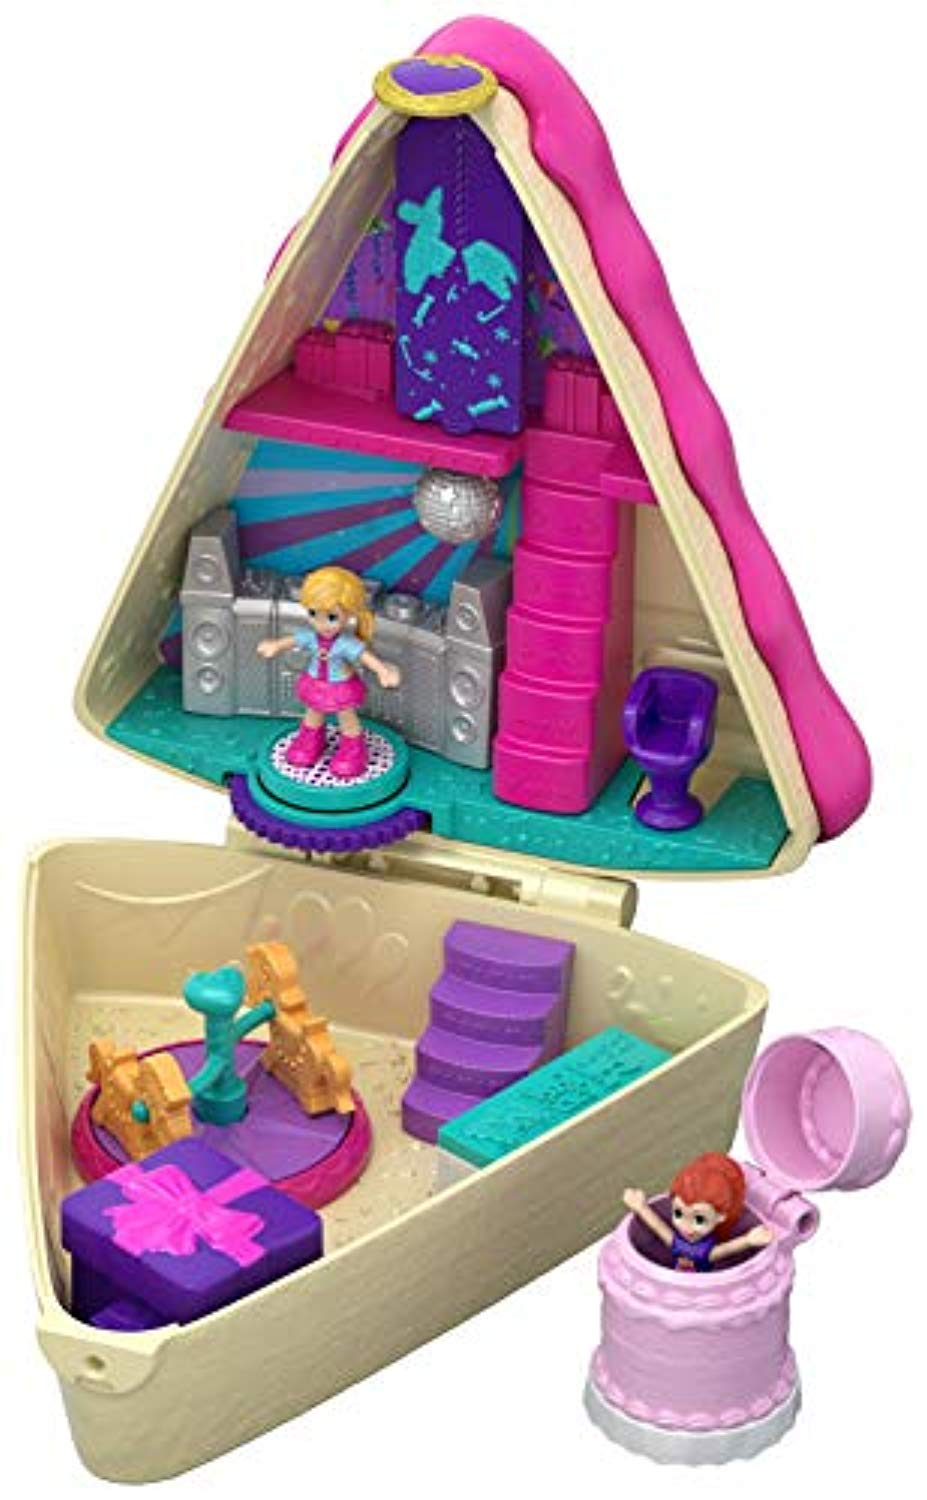 Polly Pocket GFM49 Birthday Cake Bash Compact, 2 Dolls and Accessories, Multi-coloured - iBuy Africa